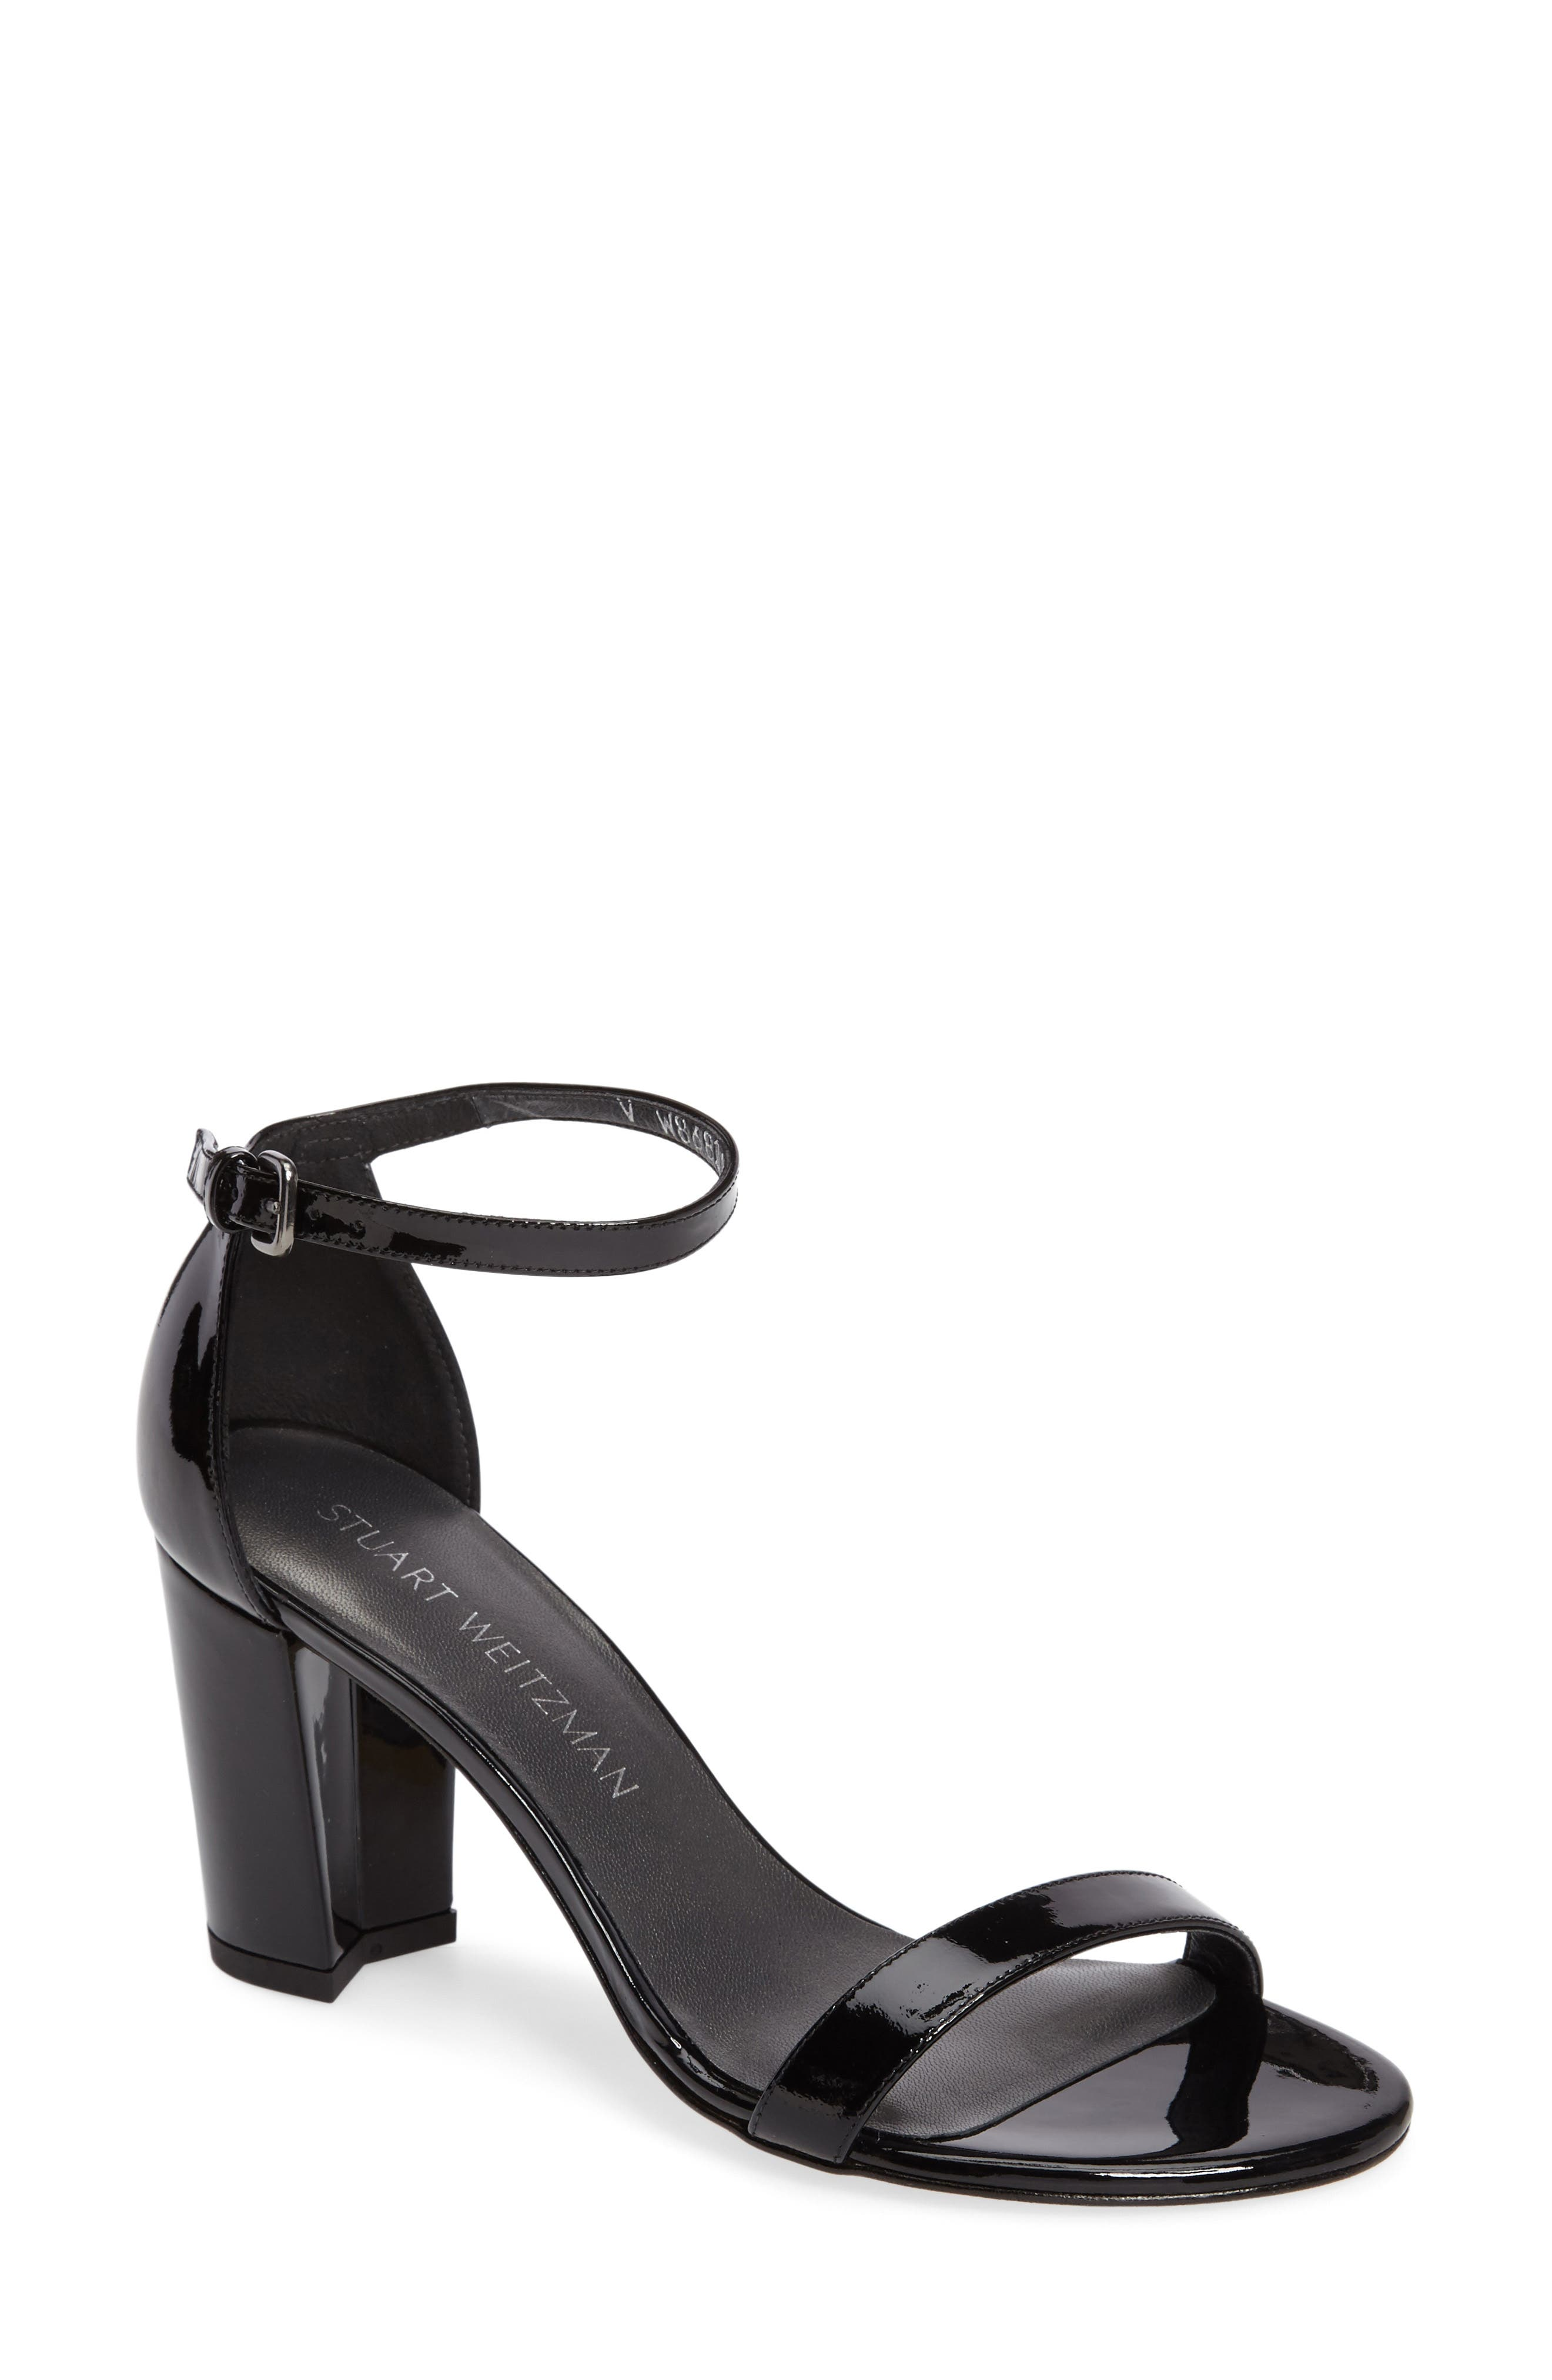 NearlyNude Ankle Strap Sandal,                             Main thumbnail 11, color,